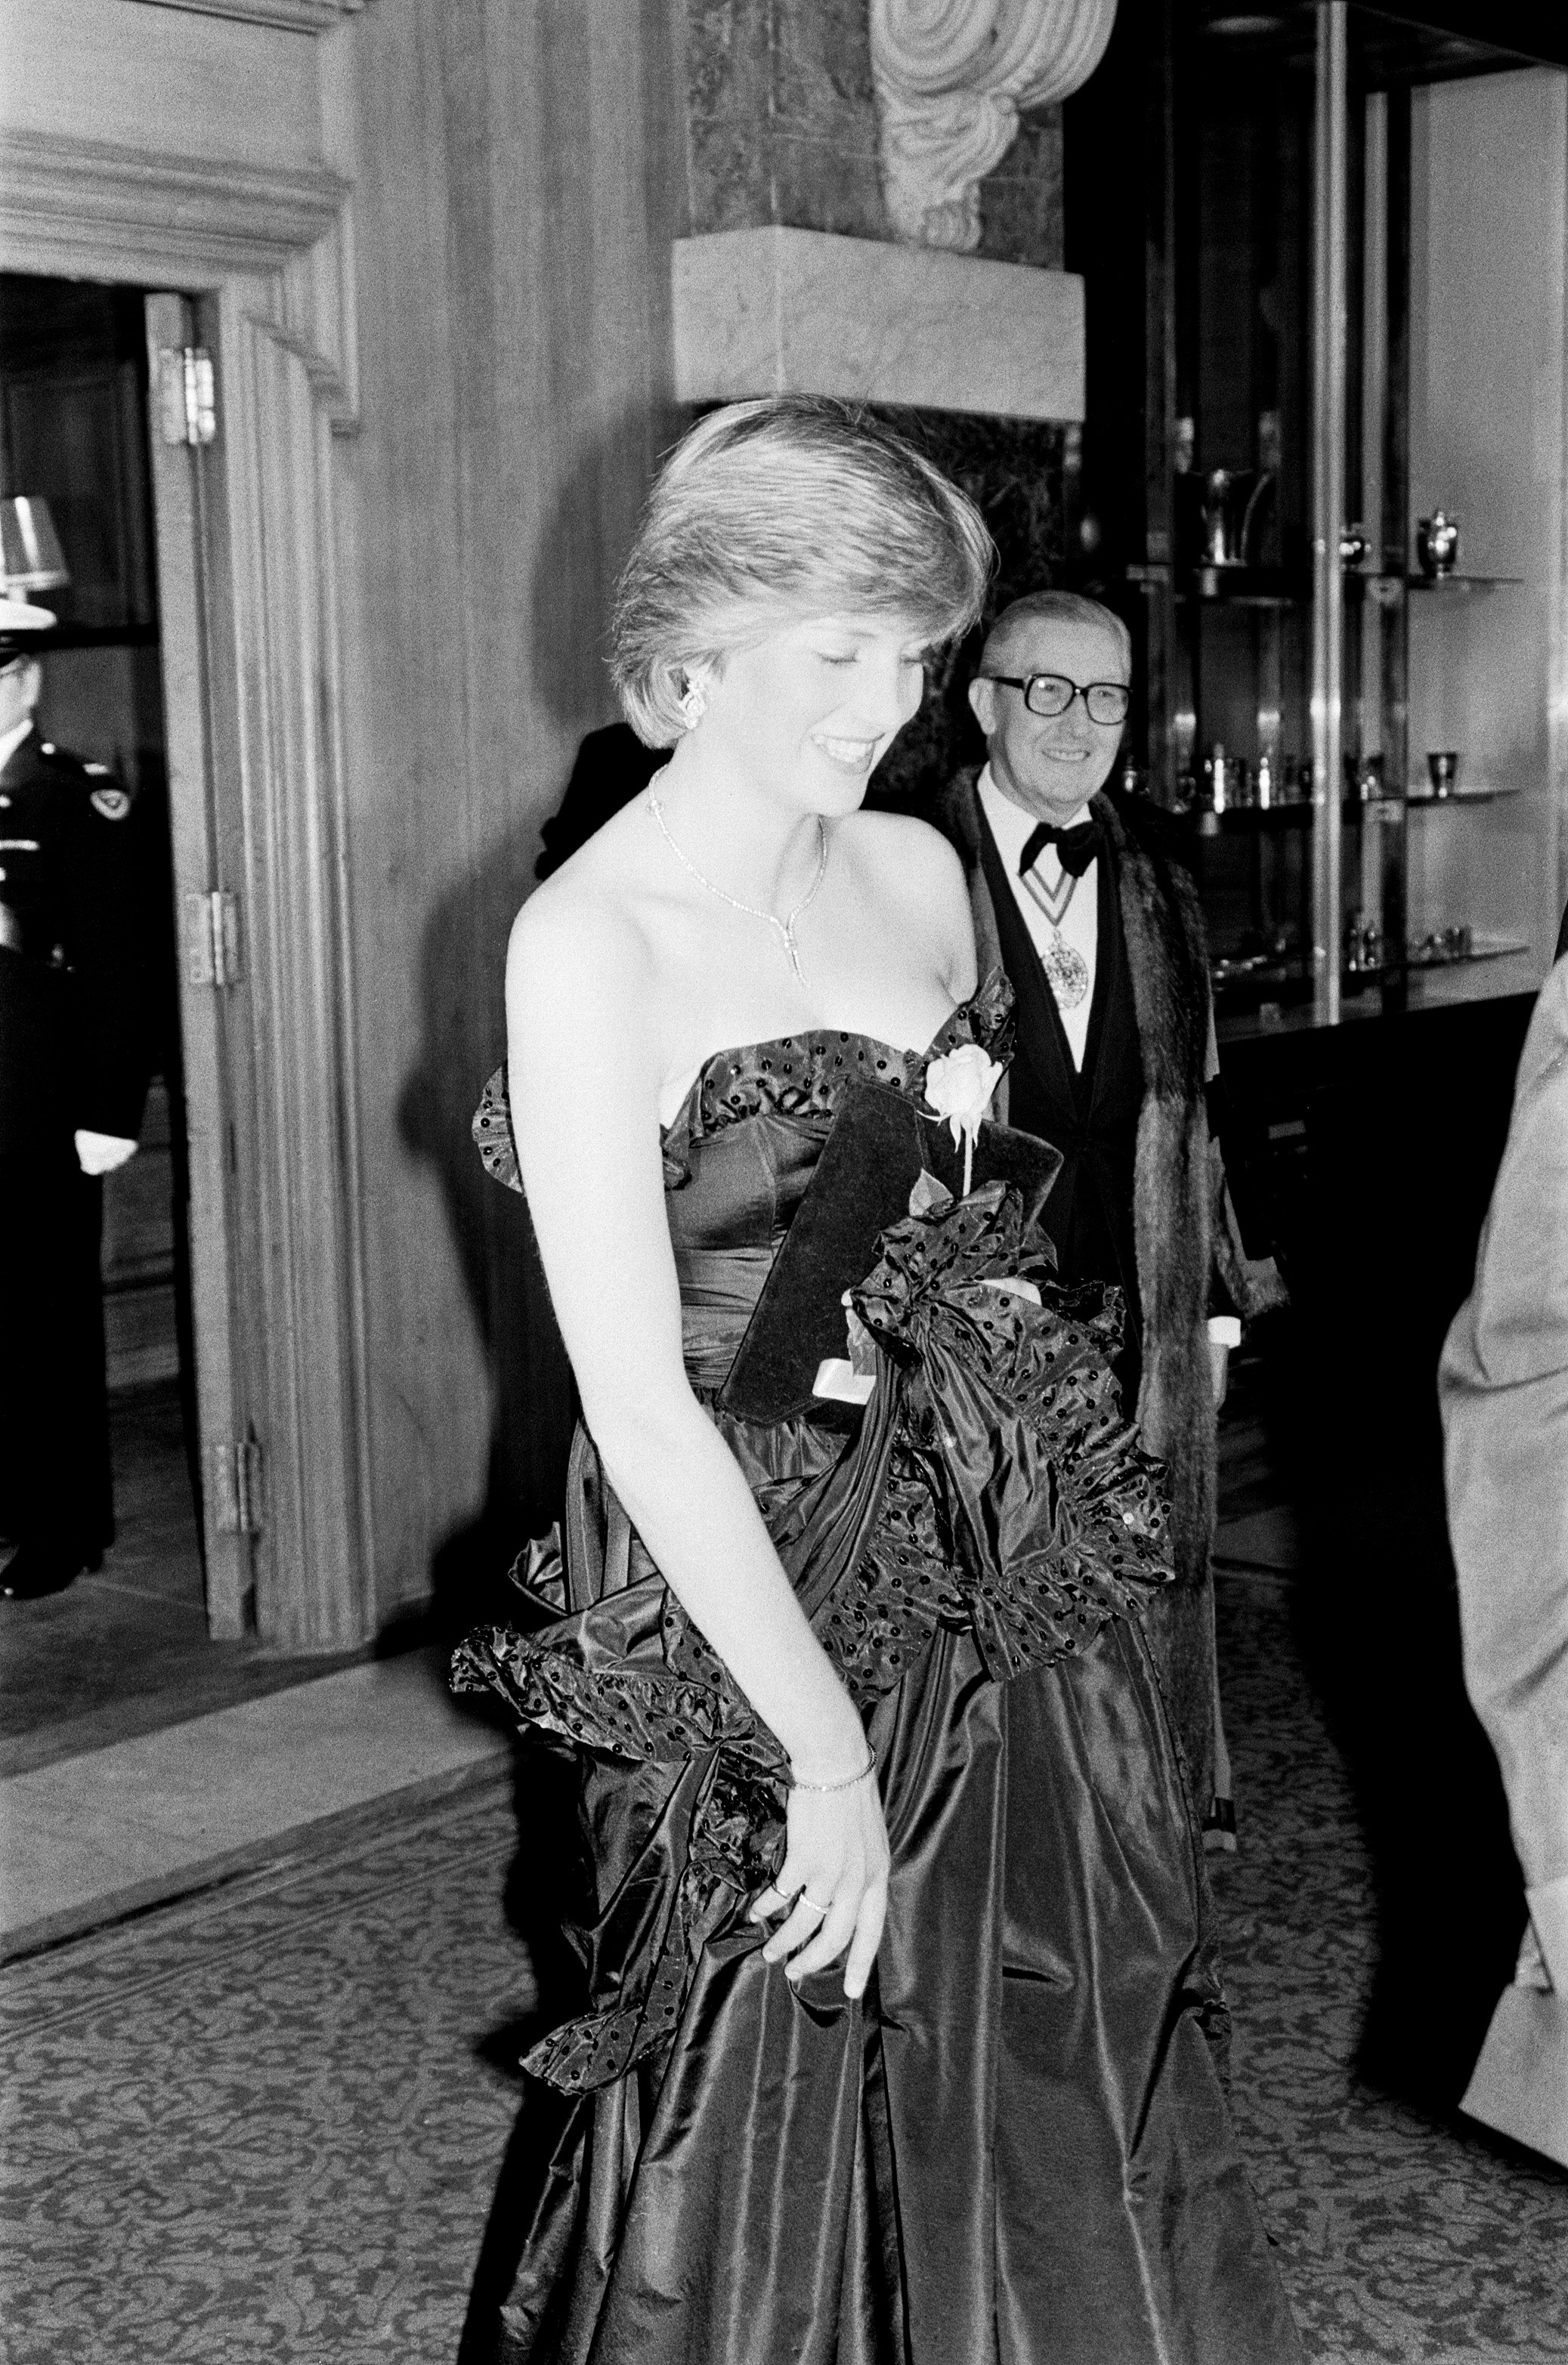 Lady Diana Spencer attended her first public engagement tonight, when she joined Prince Charles at a Gala Charity Concert at the Goldsmith's Hall, London, in aid of the Royal Opera House. Princess Grace of Monaco also attends the event, as seen in other f (Foto: Getty Images)